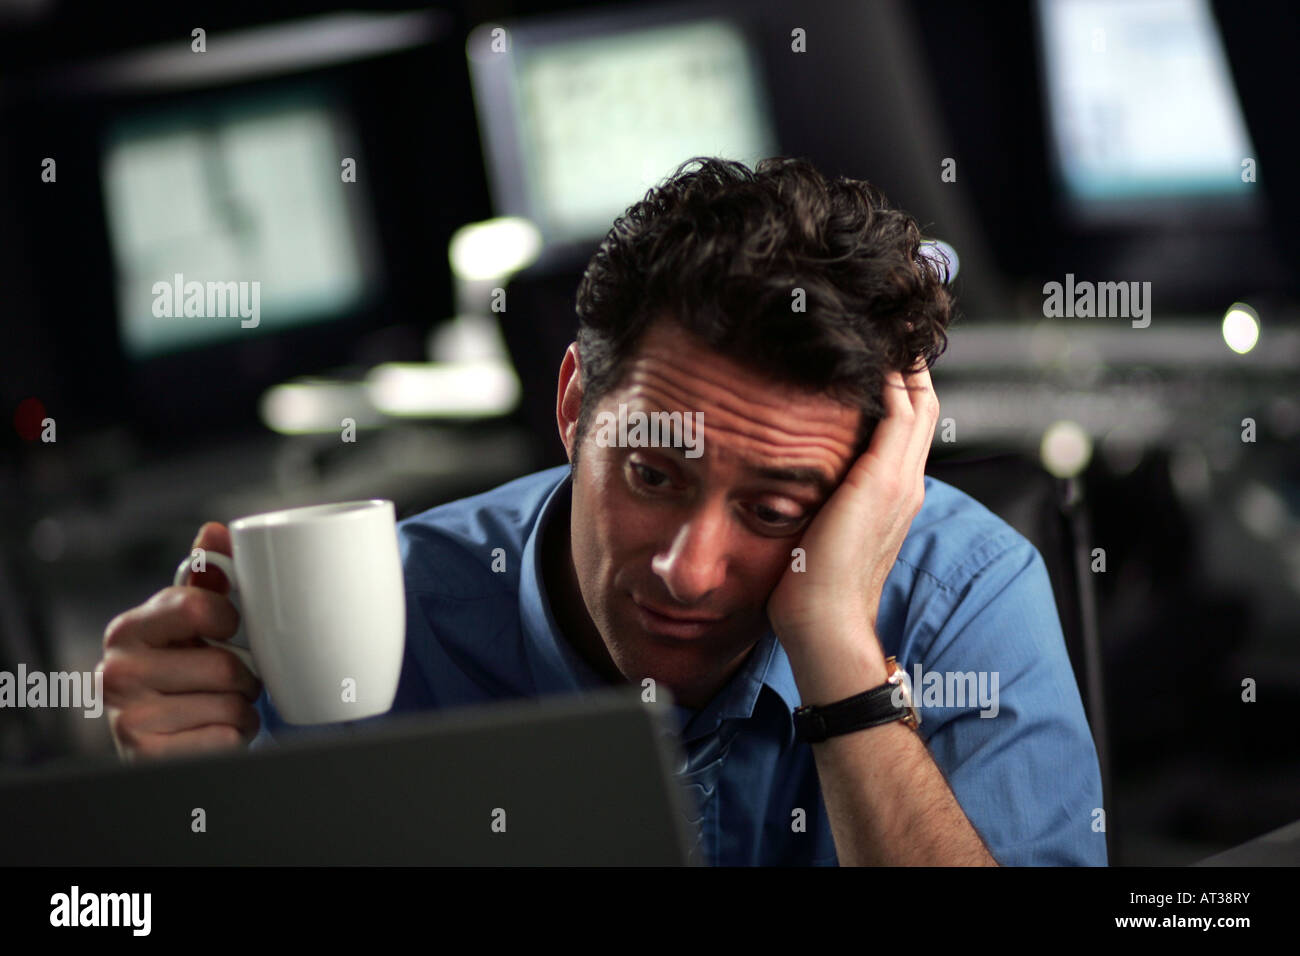 A business man sitting at his desk looking tired holding a cup of coffee - Stock Image